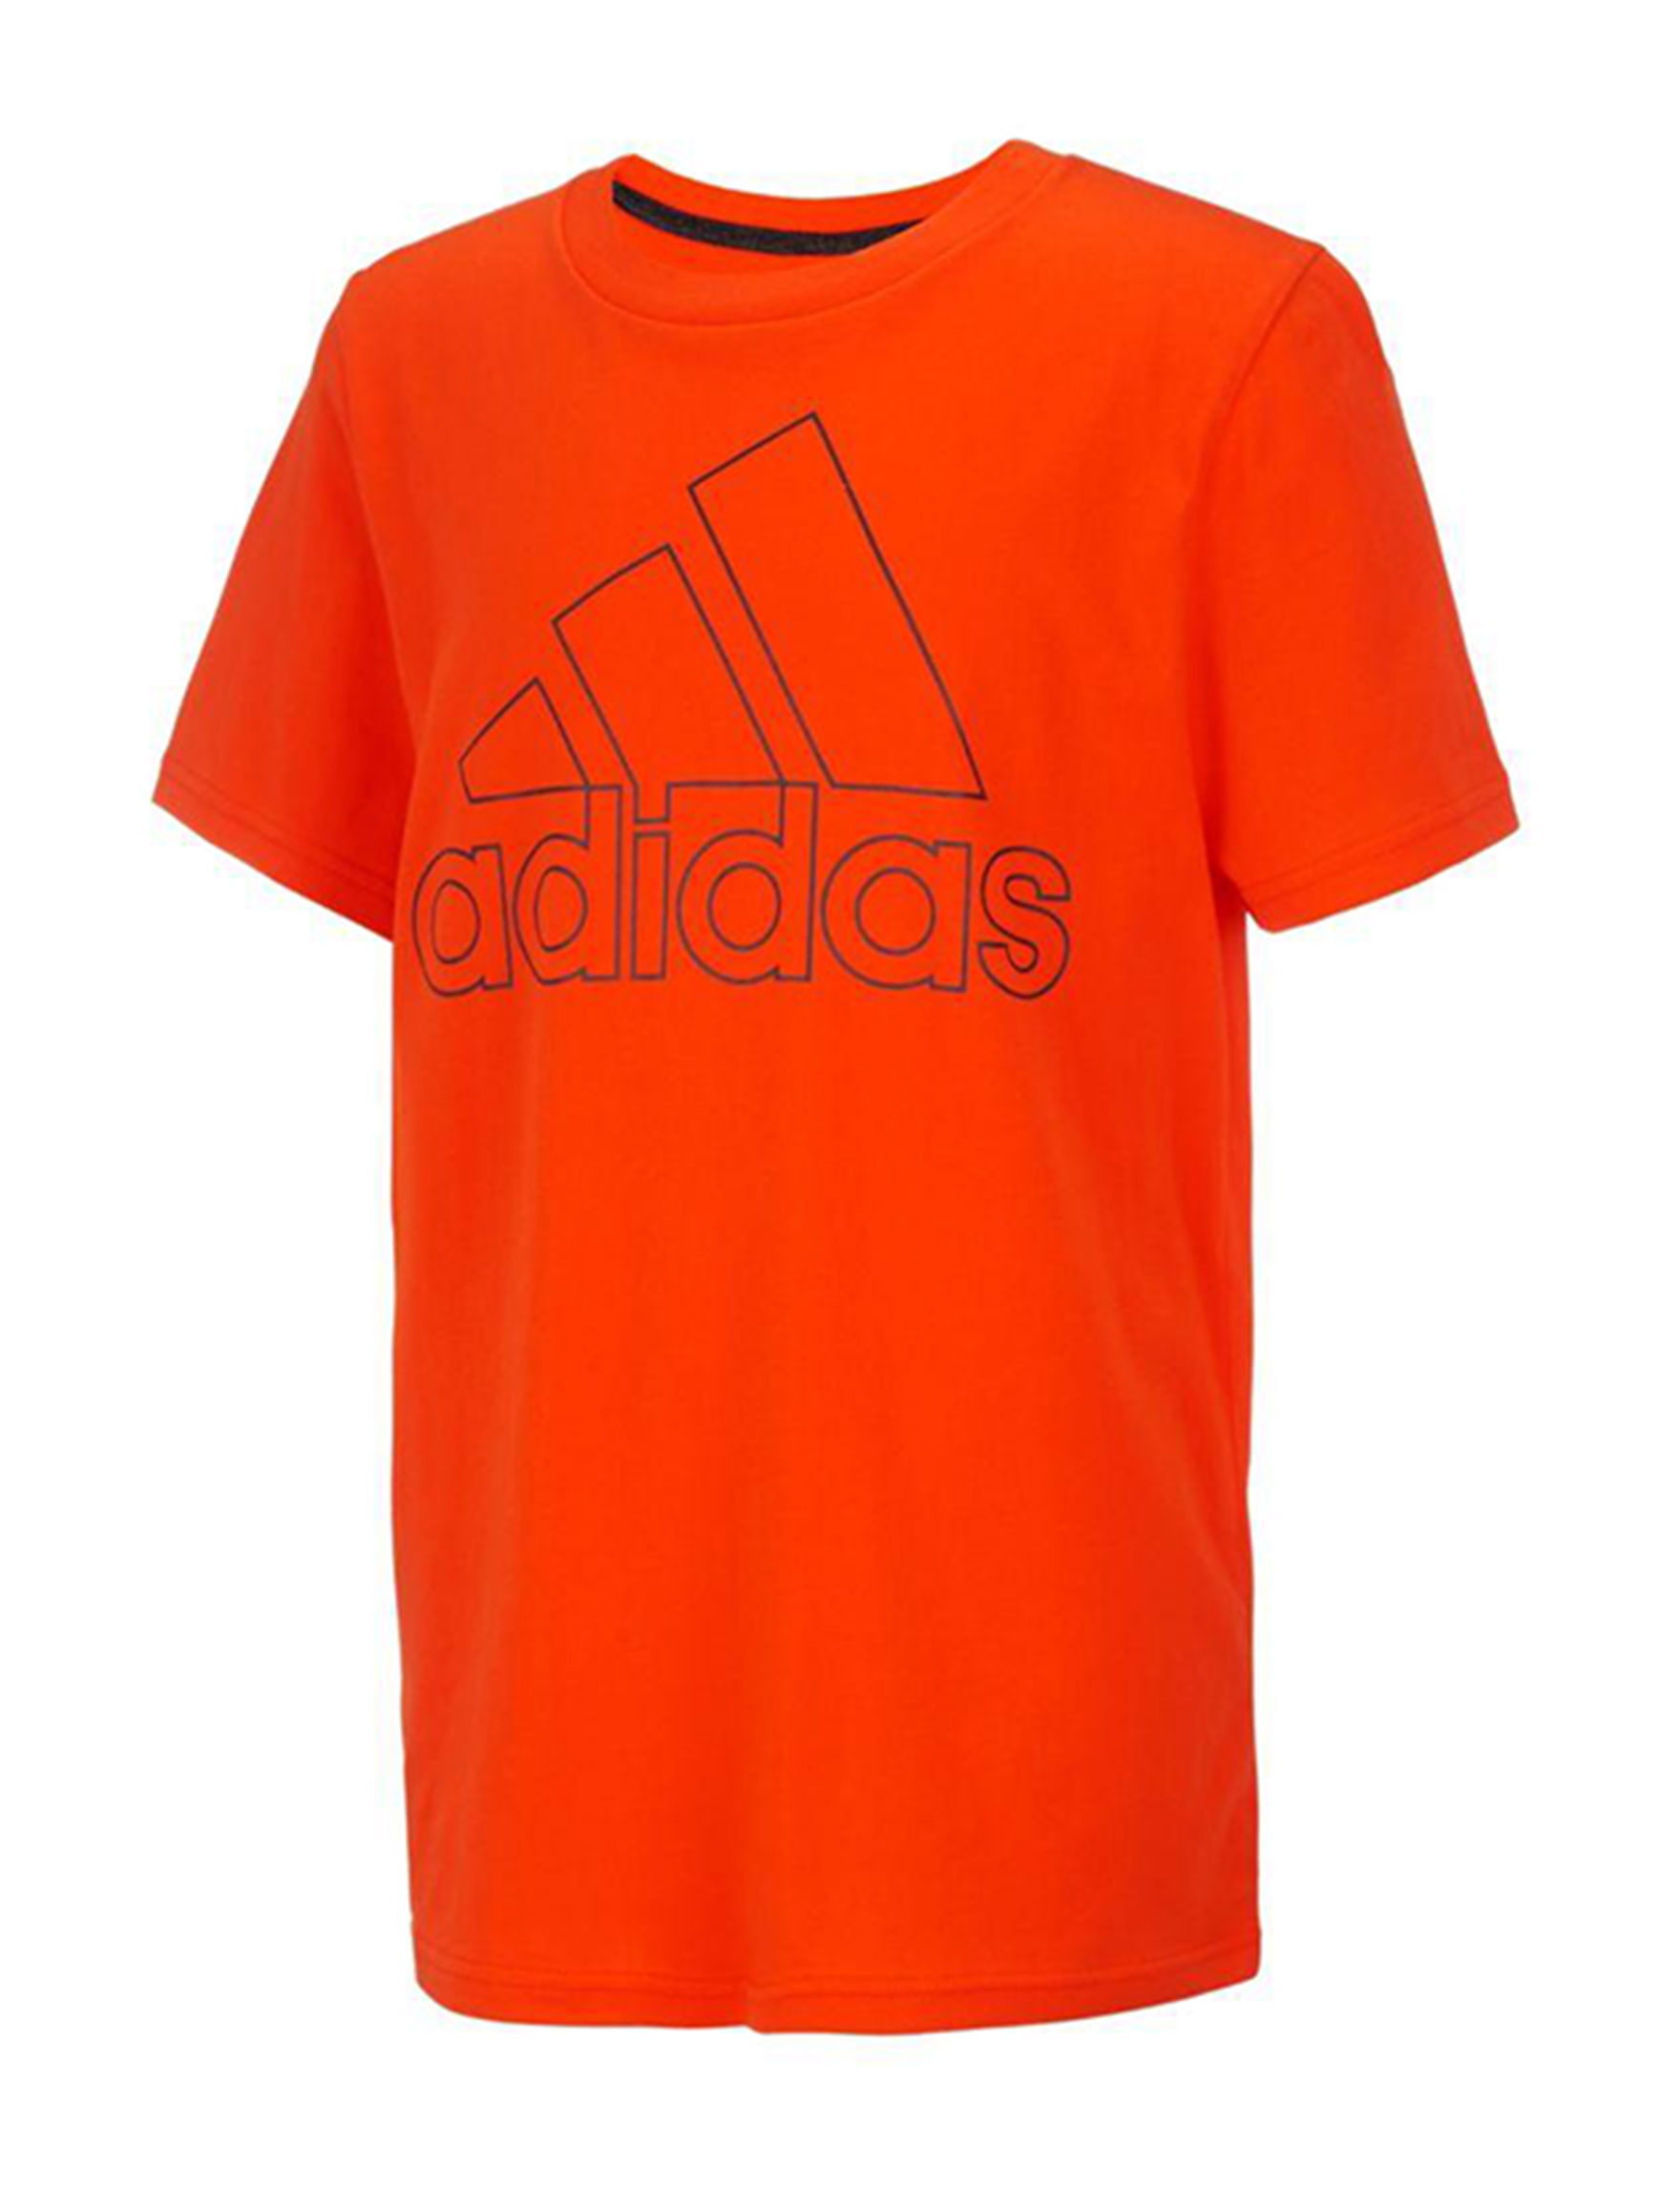 4a41118730 adidas Logo Performance T-shirt - Boys 8-20